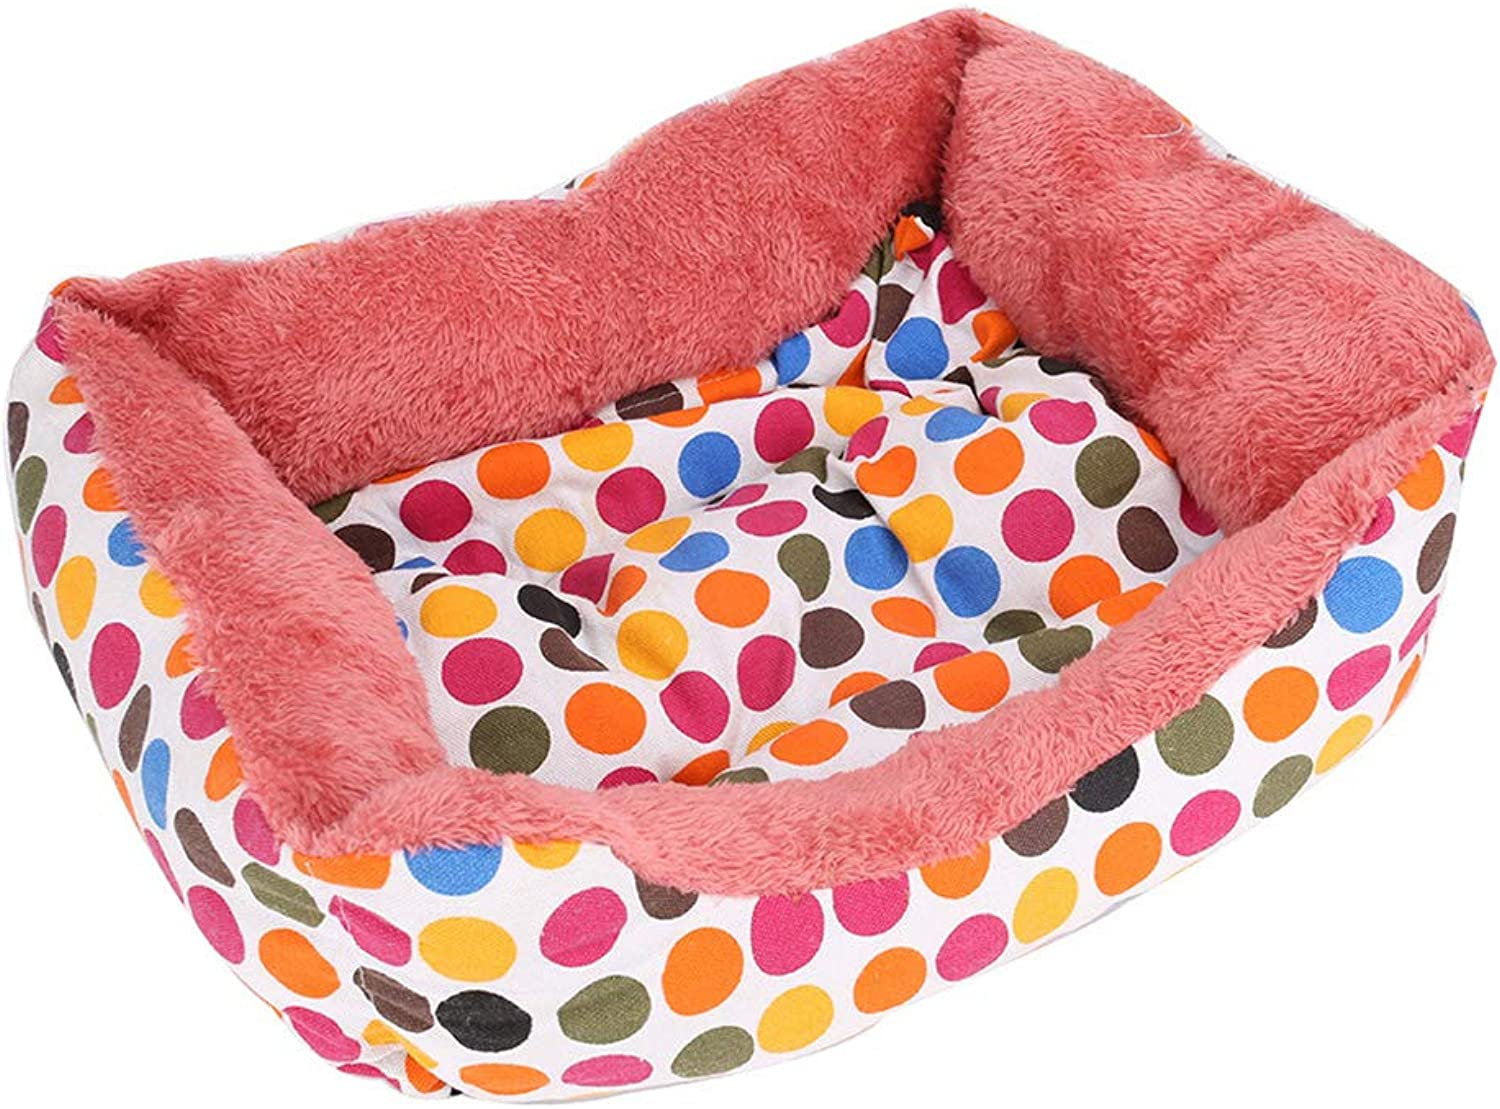 Hxyan Dog Bed Pet Nest Cat Bed Small Medium Wave Point Not Deformed Short Plush Pet Pad 65  55cm